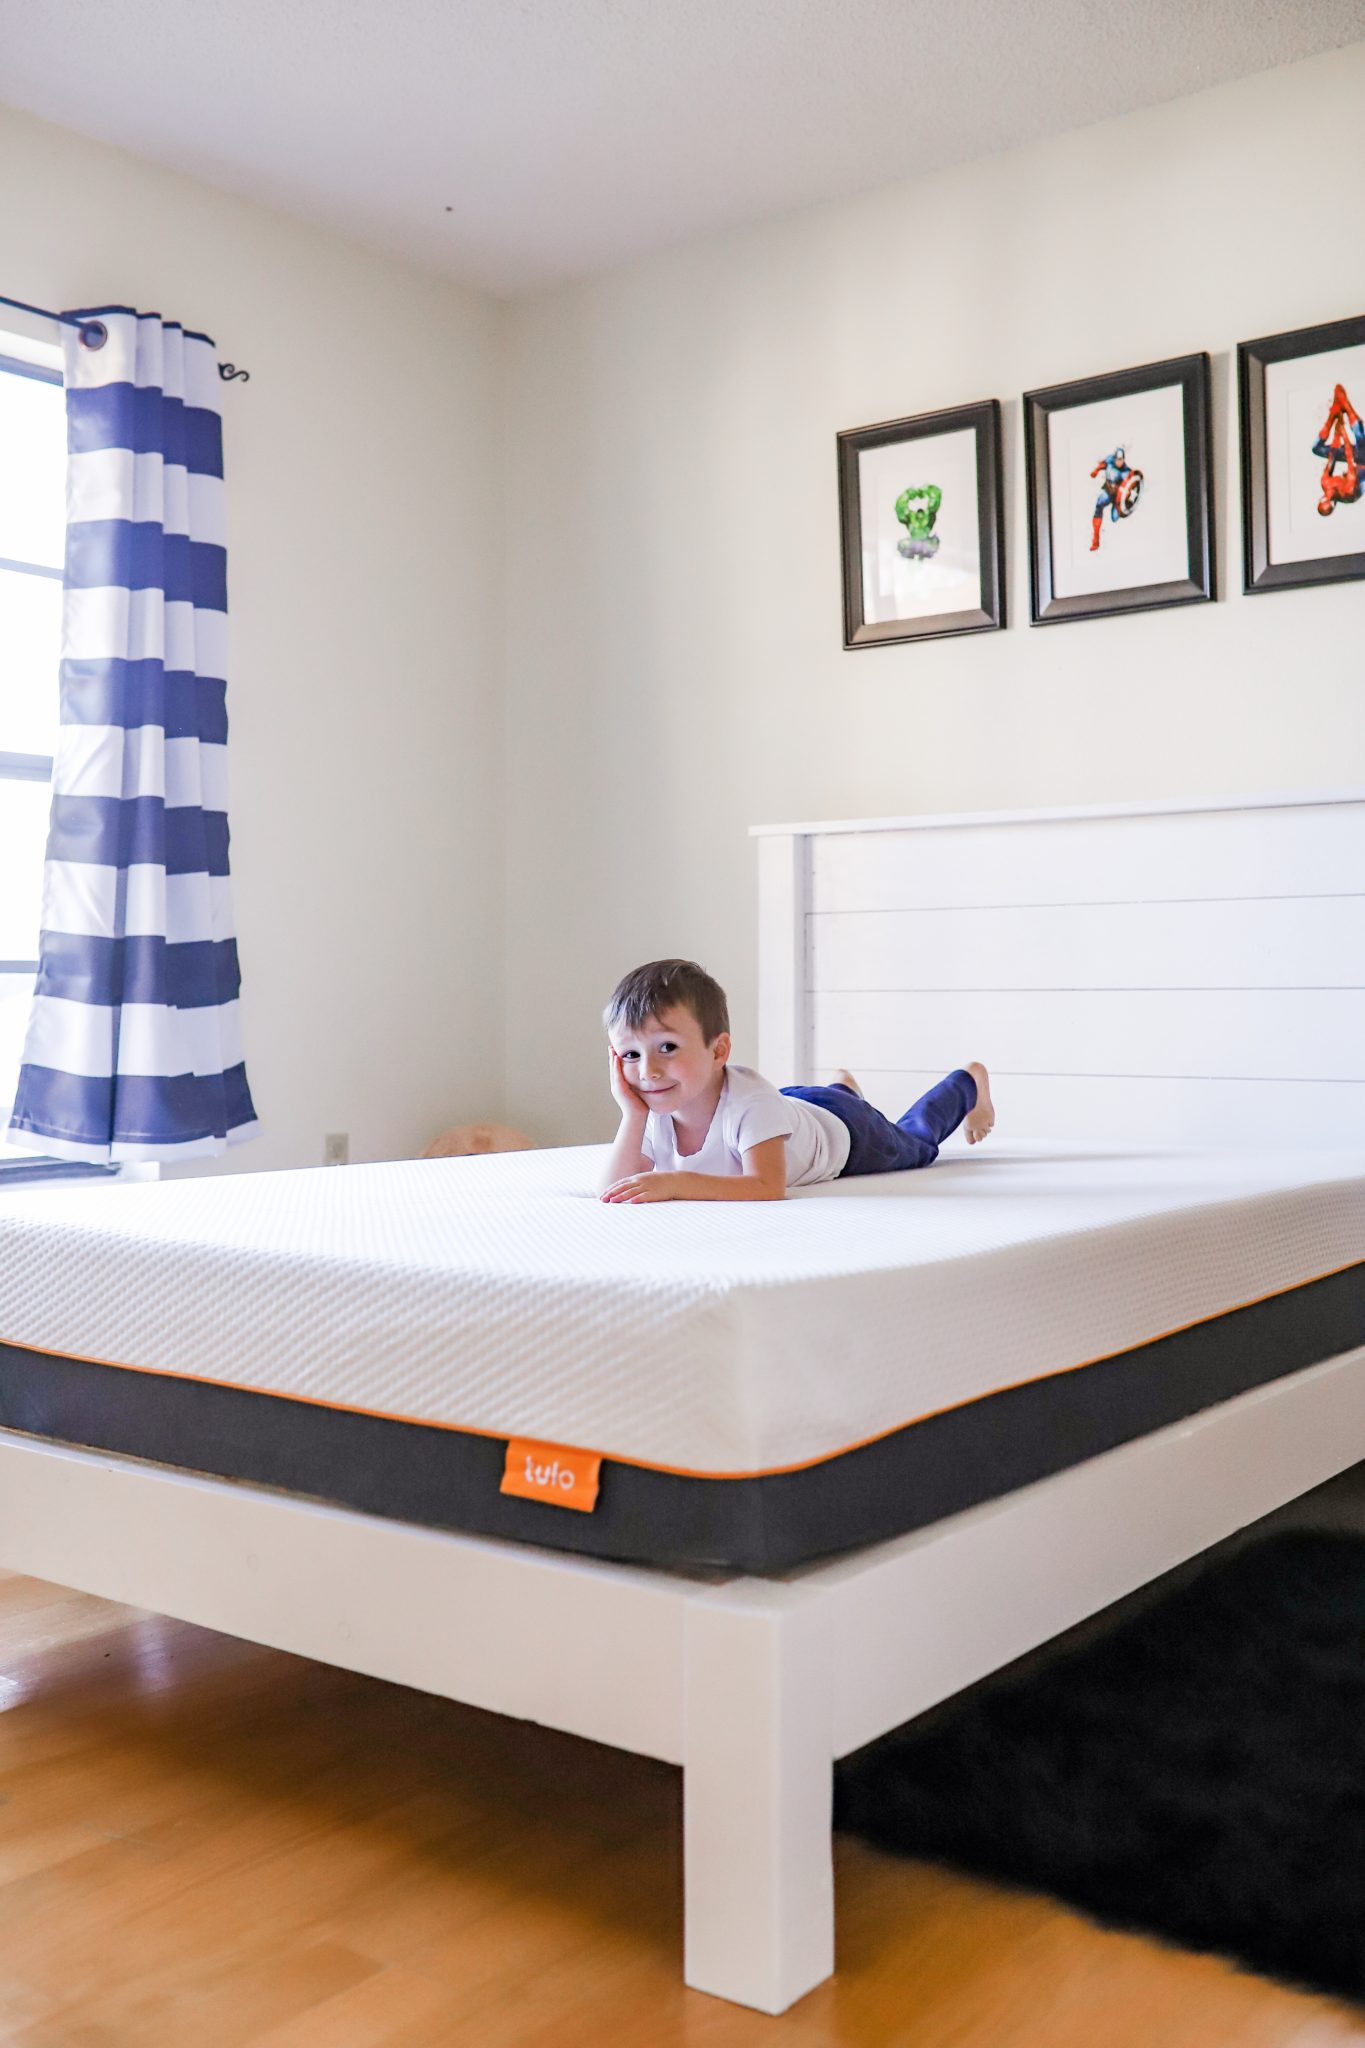 A modern superhero boy's bedroom featuring the Tulo Soft mattress from Mattress Firm - Tampa Lifestyle & Mom Blogger, Crazy Life with Littles